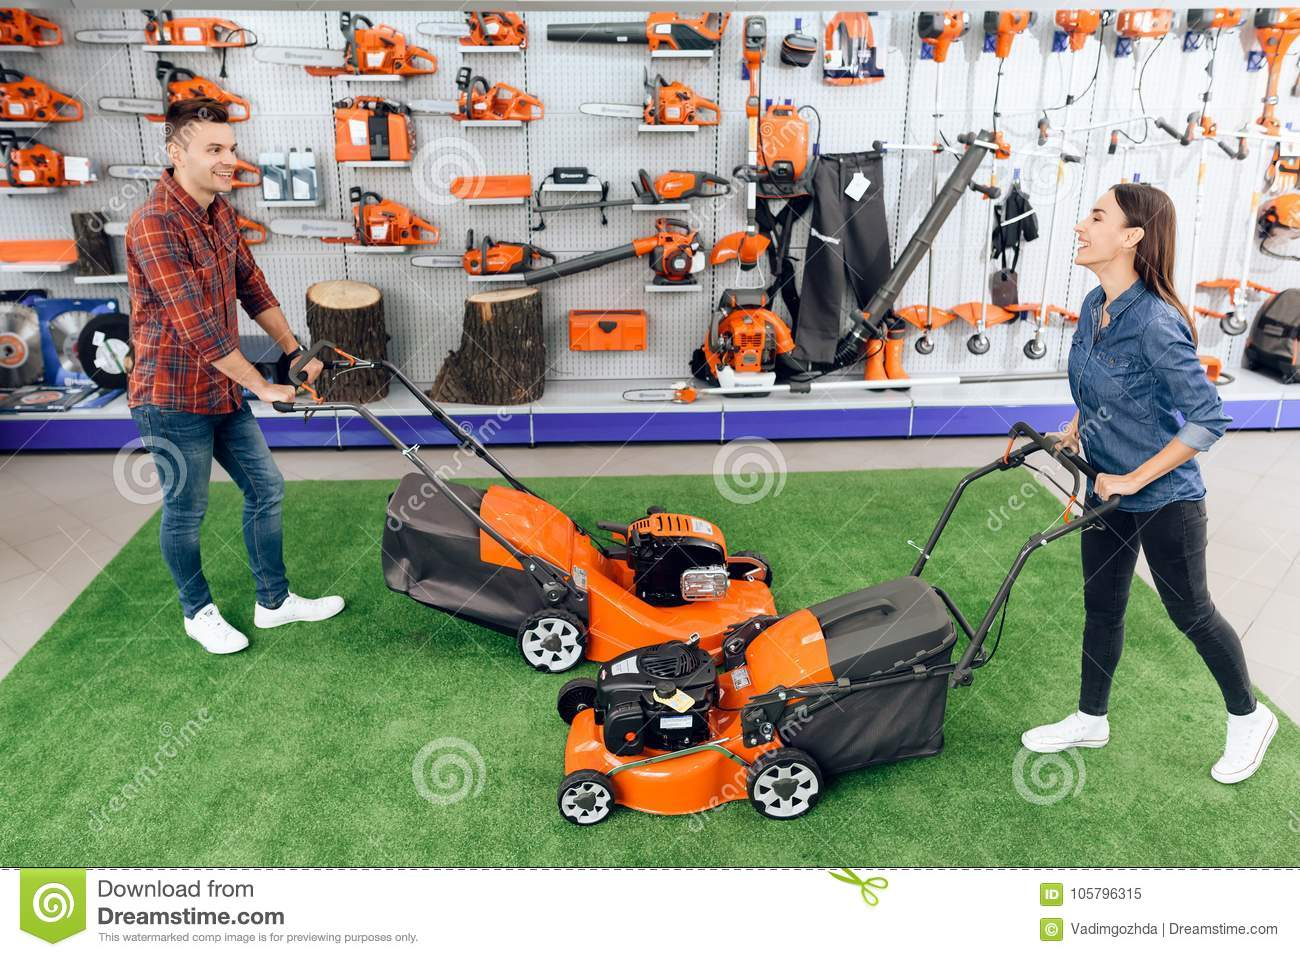 Download A Guy And A Girl Are Posing On The Camera With A Lawn Mower. Stock Image - Image of couple, shopper: 105796315